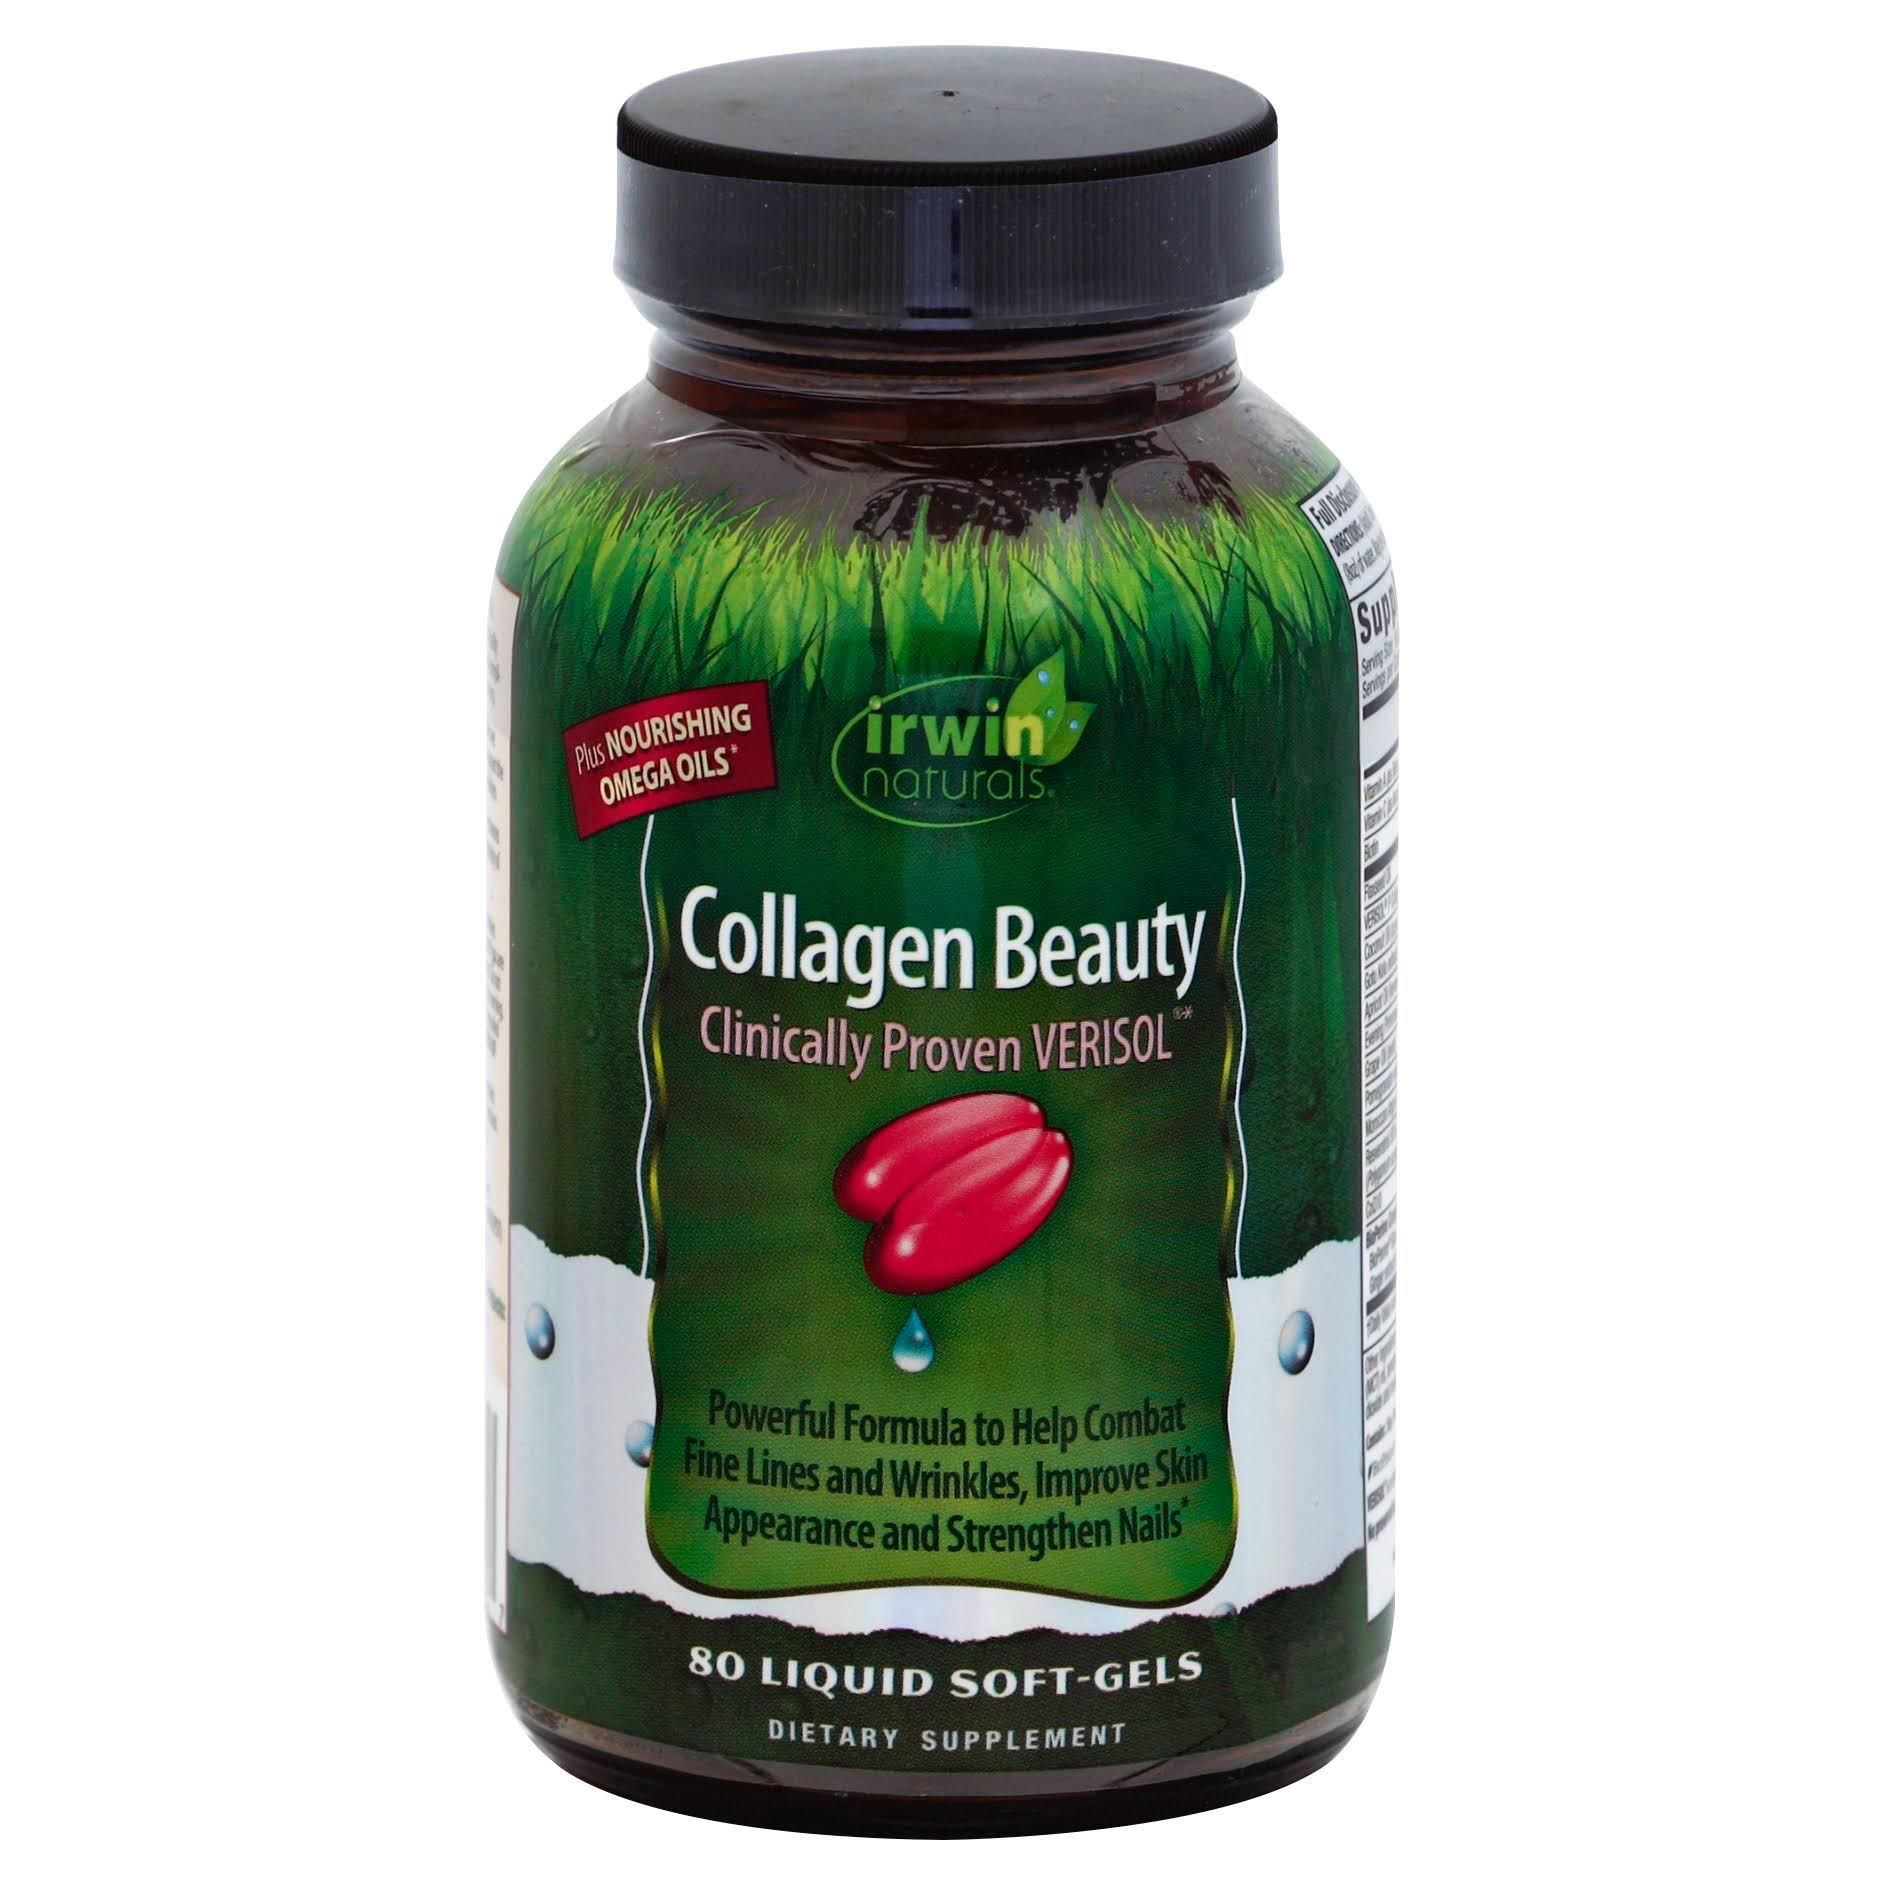 Collagen Beauty Clinically Proven Verisol Dietary Supplement - 80ct